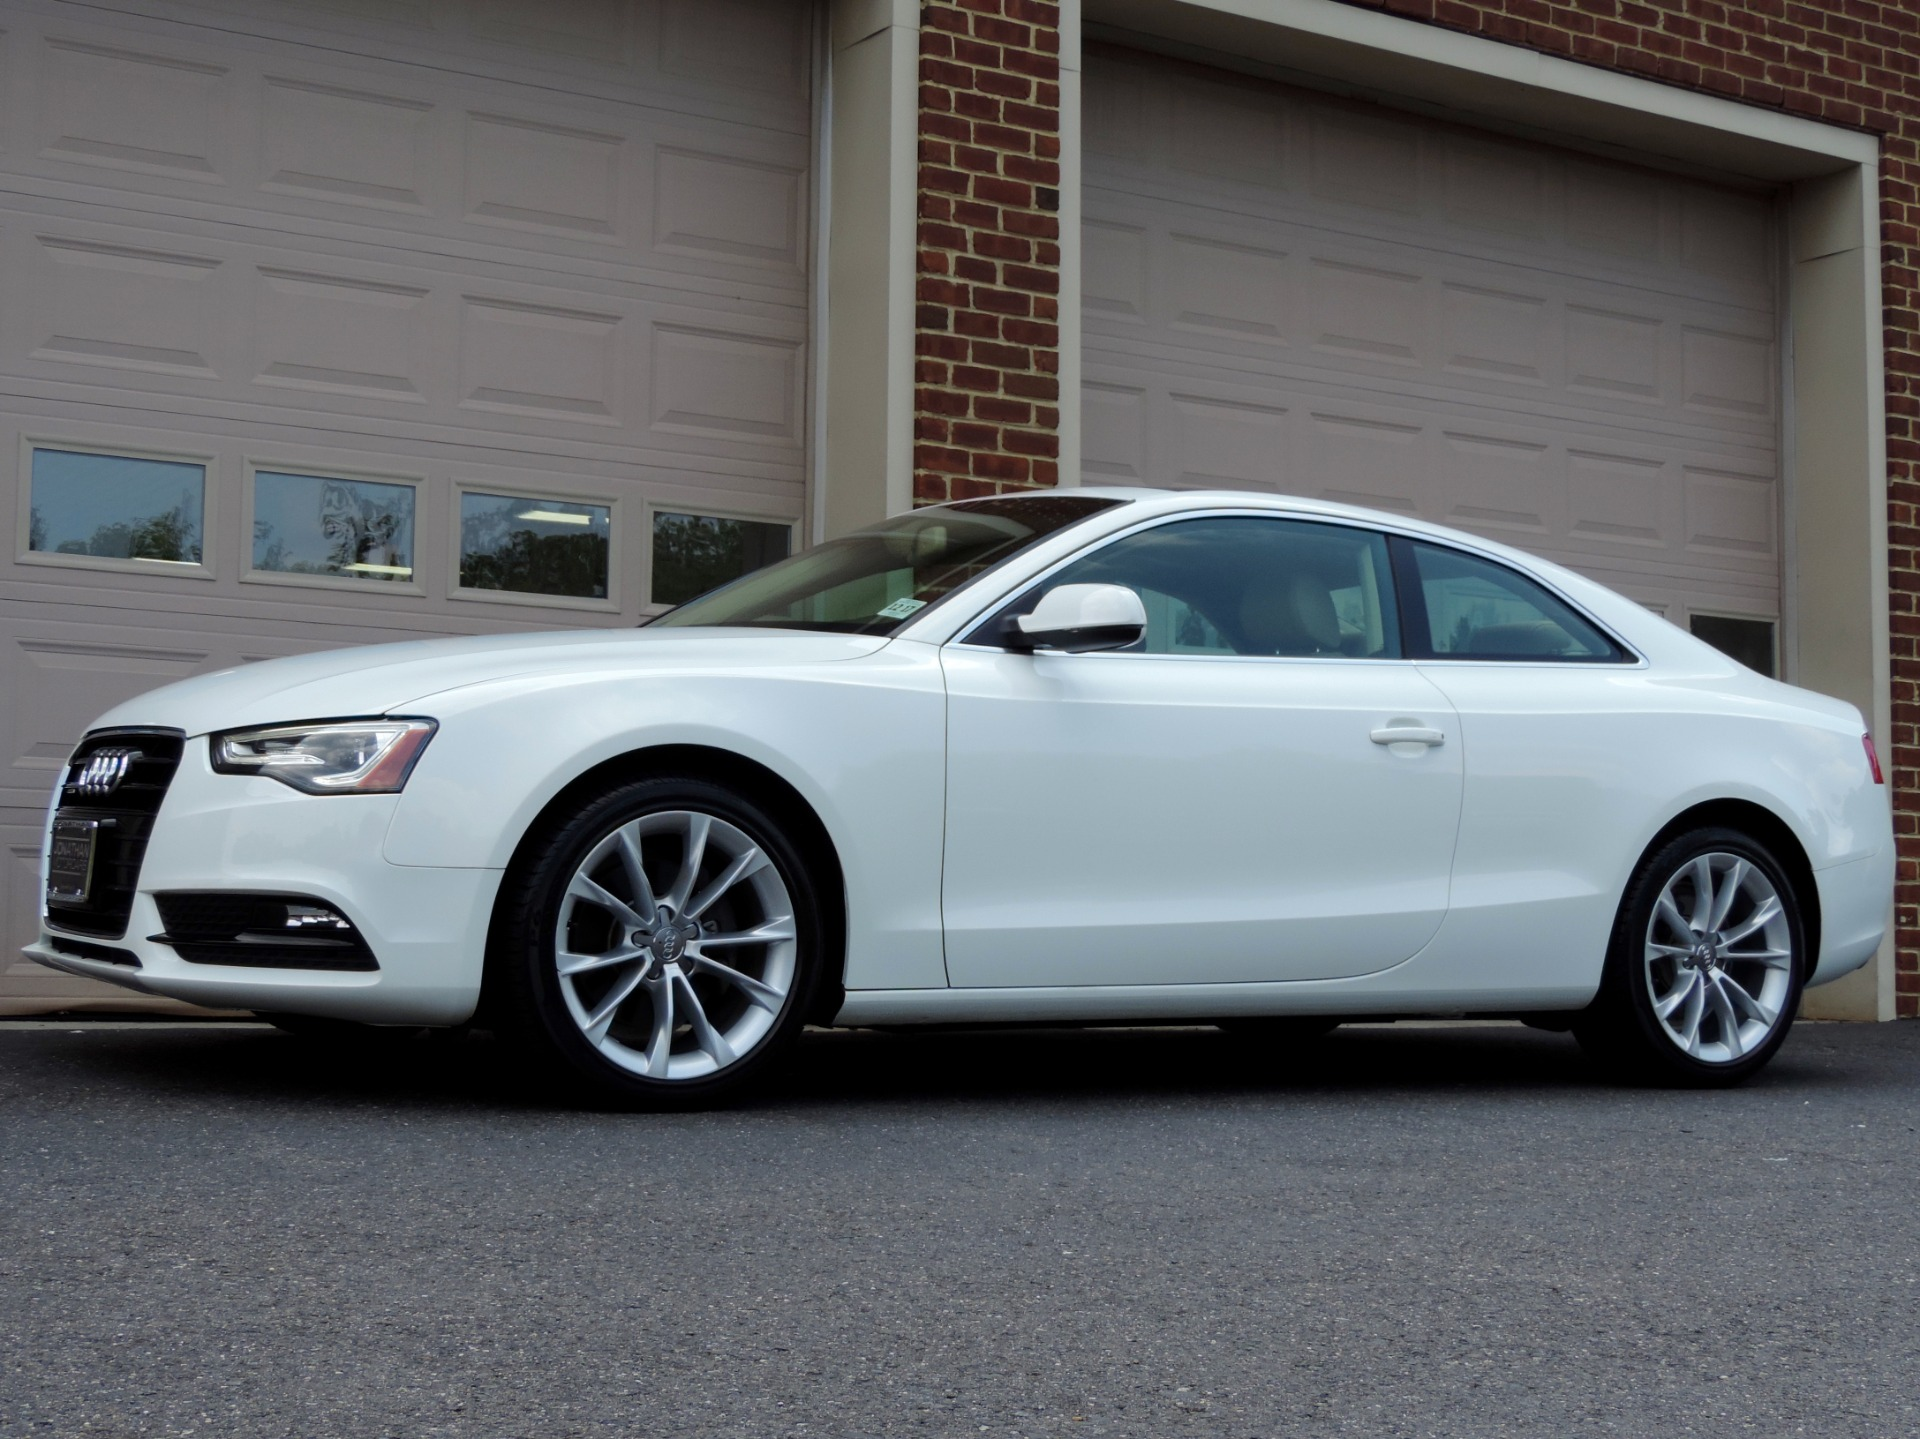 Audi Dealers Nj >> 2013 Audi A5 2.0T quattro Prestige Stock # 043392 for sale near Edgewater Park, NJ | NJ Audi Dealer